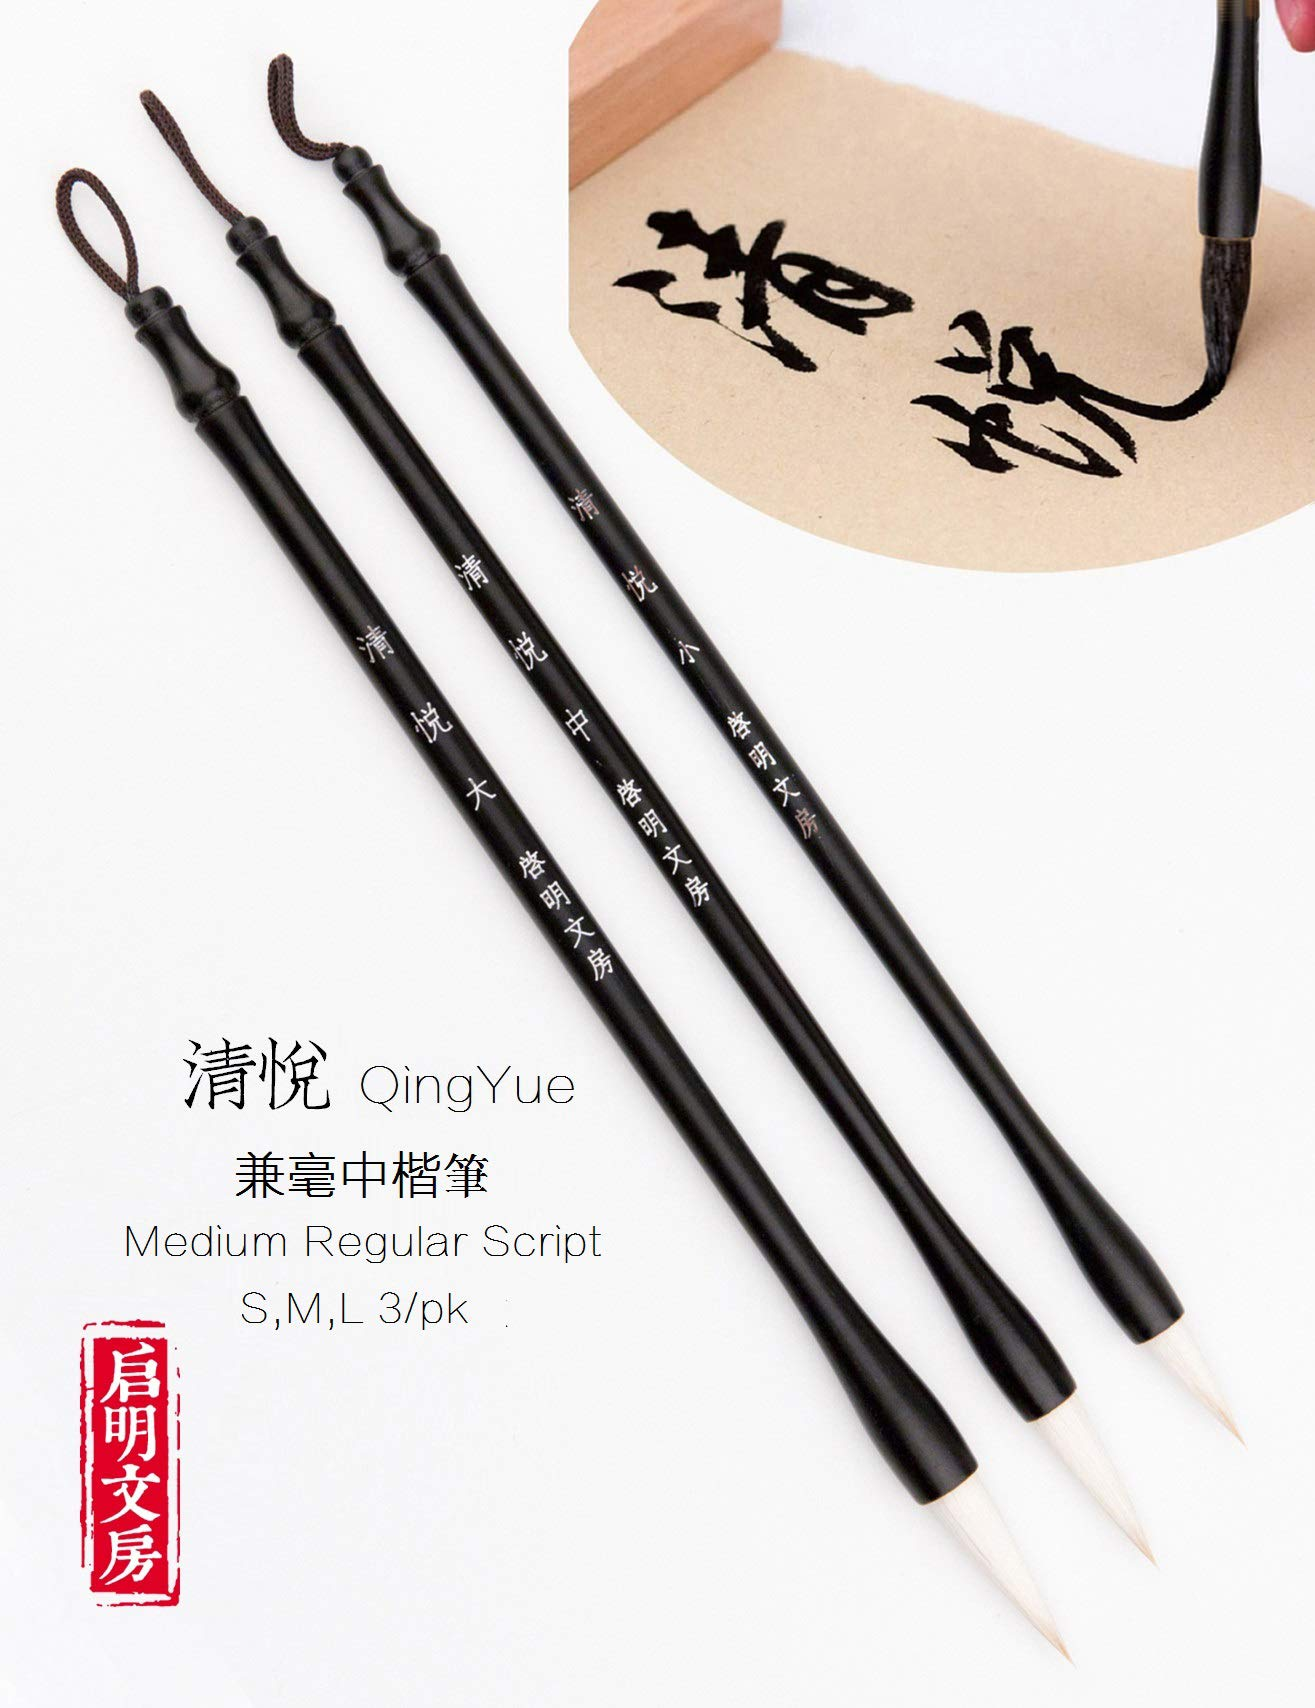 QiMing WenFang QingYue Zhongkai Chinese Brush, Yang Jian Hao Chinese Calligraphy Brush for Regular Script/ KaiShu, running script/ Xing shu, cursive/ Cao Shu (QingYue 3pcs Set Small+Medium+Large)